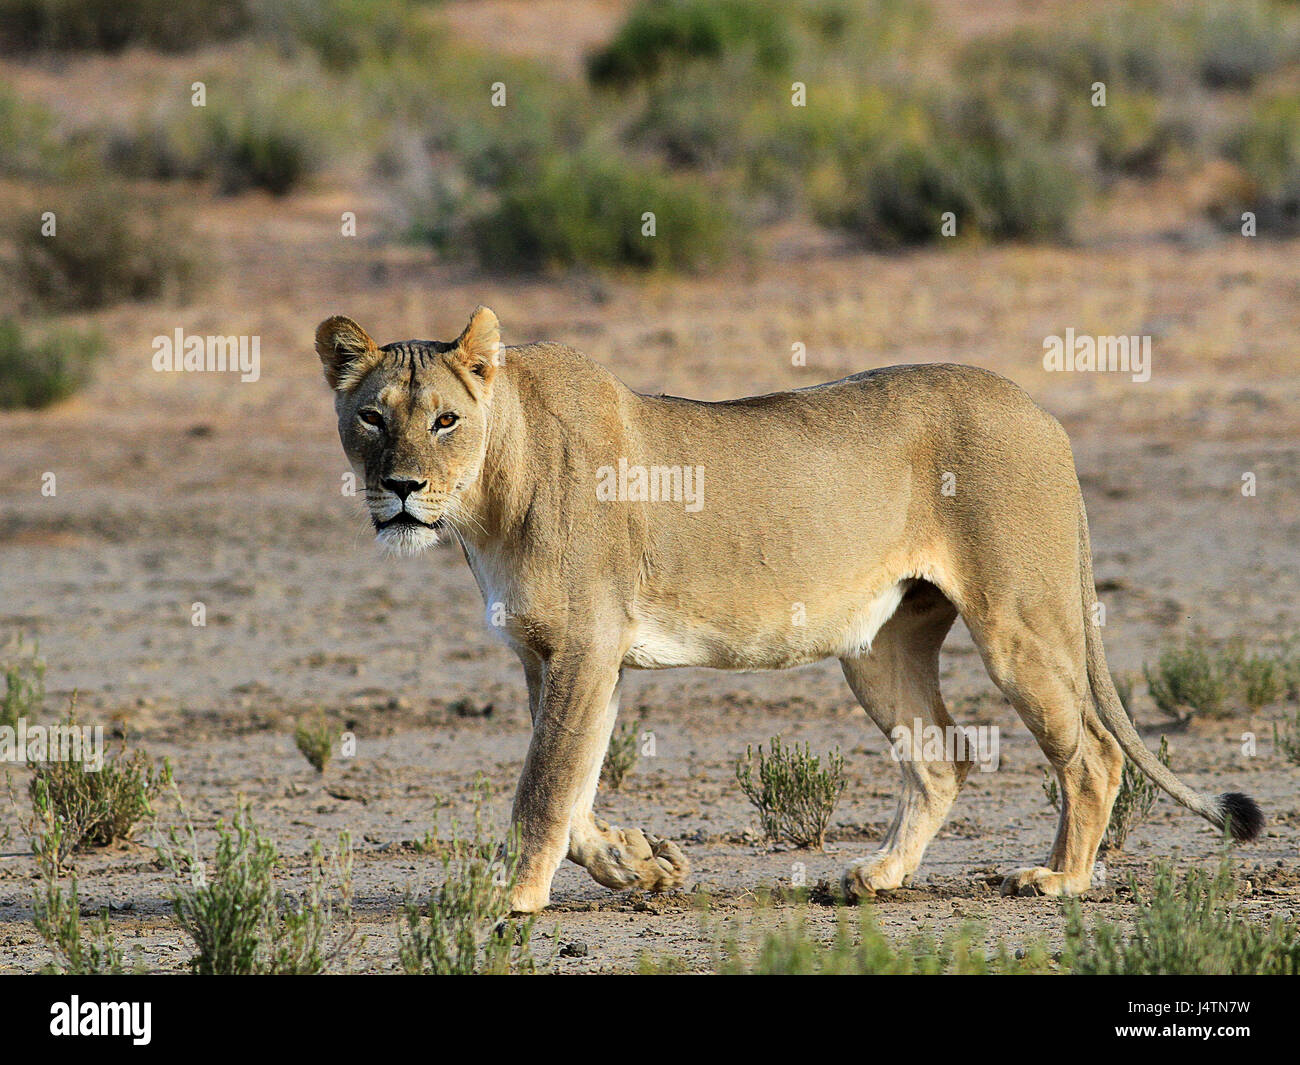 Female African lion in the Kgalagadi Transfrontier Park, Botswana - Stock Image